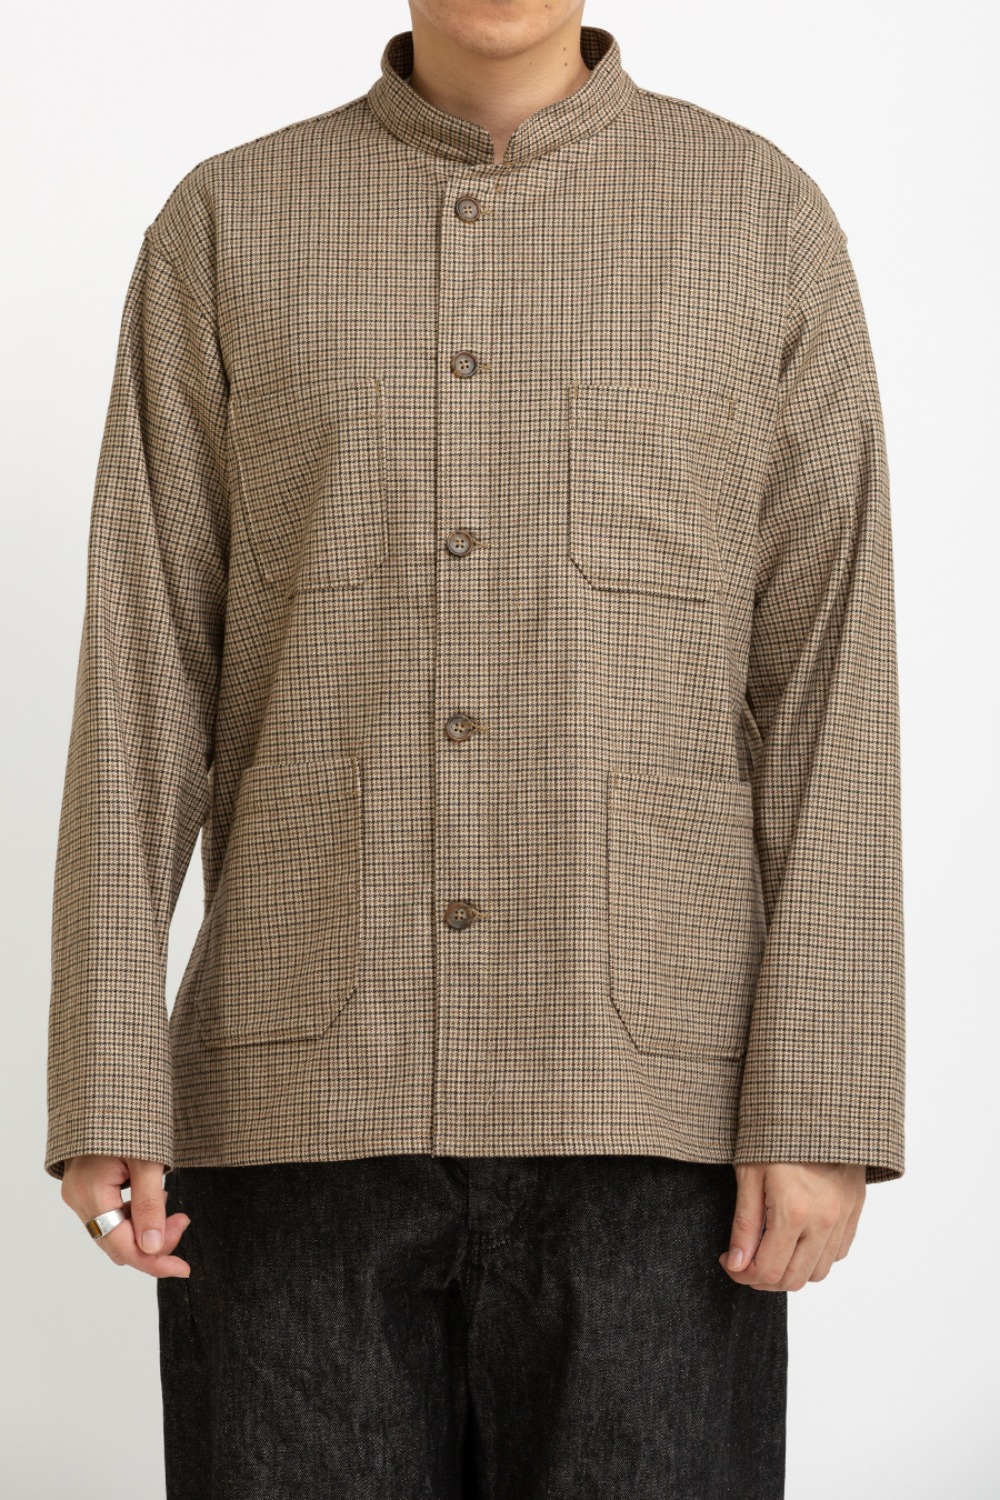 DAYTON SHIRT BROWN WOOL POLY GUNCLUB